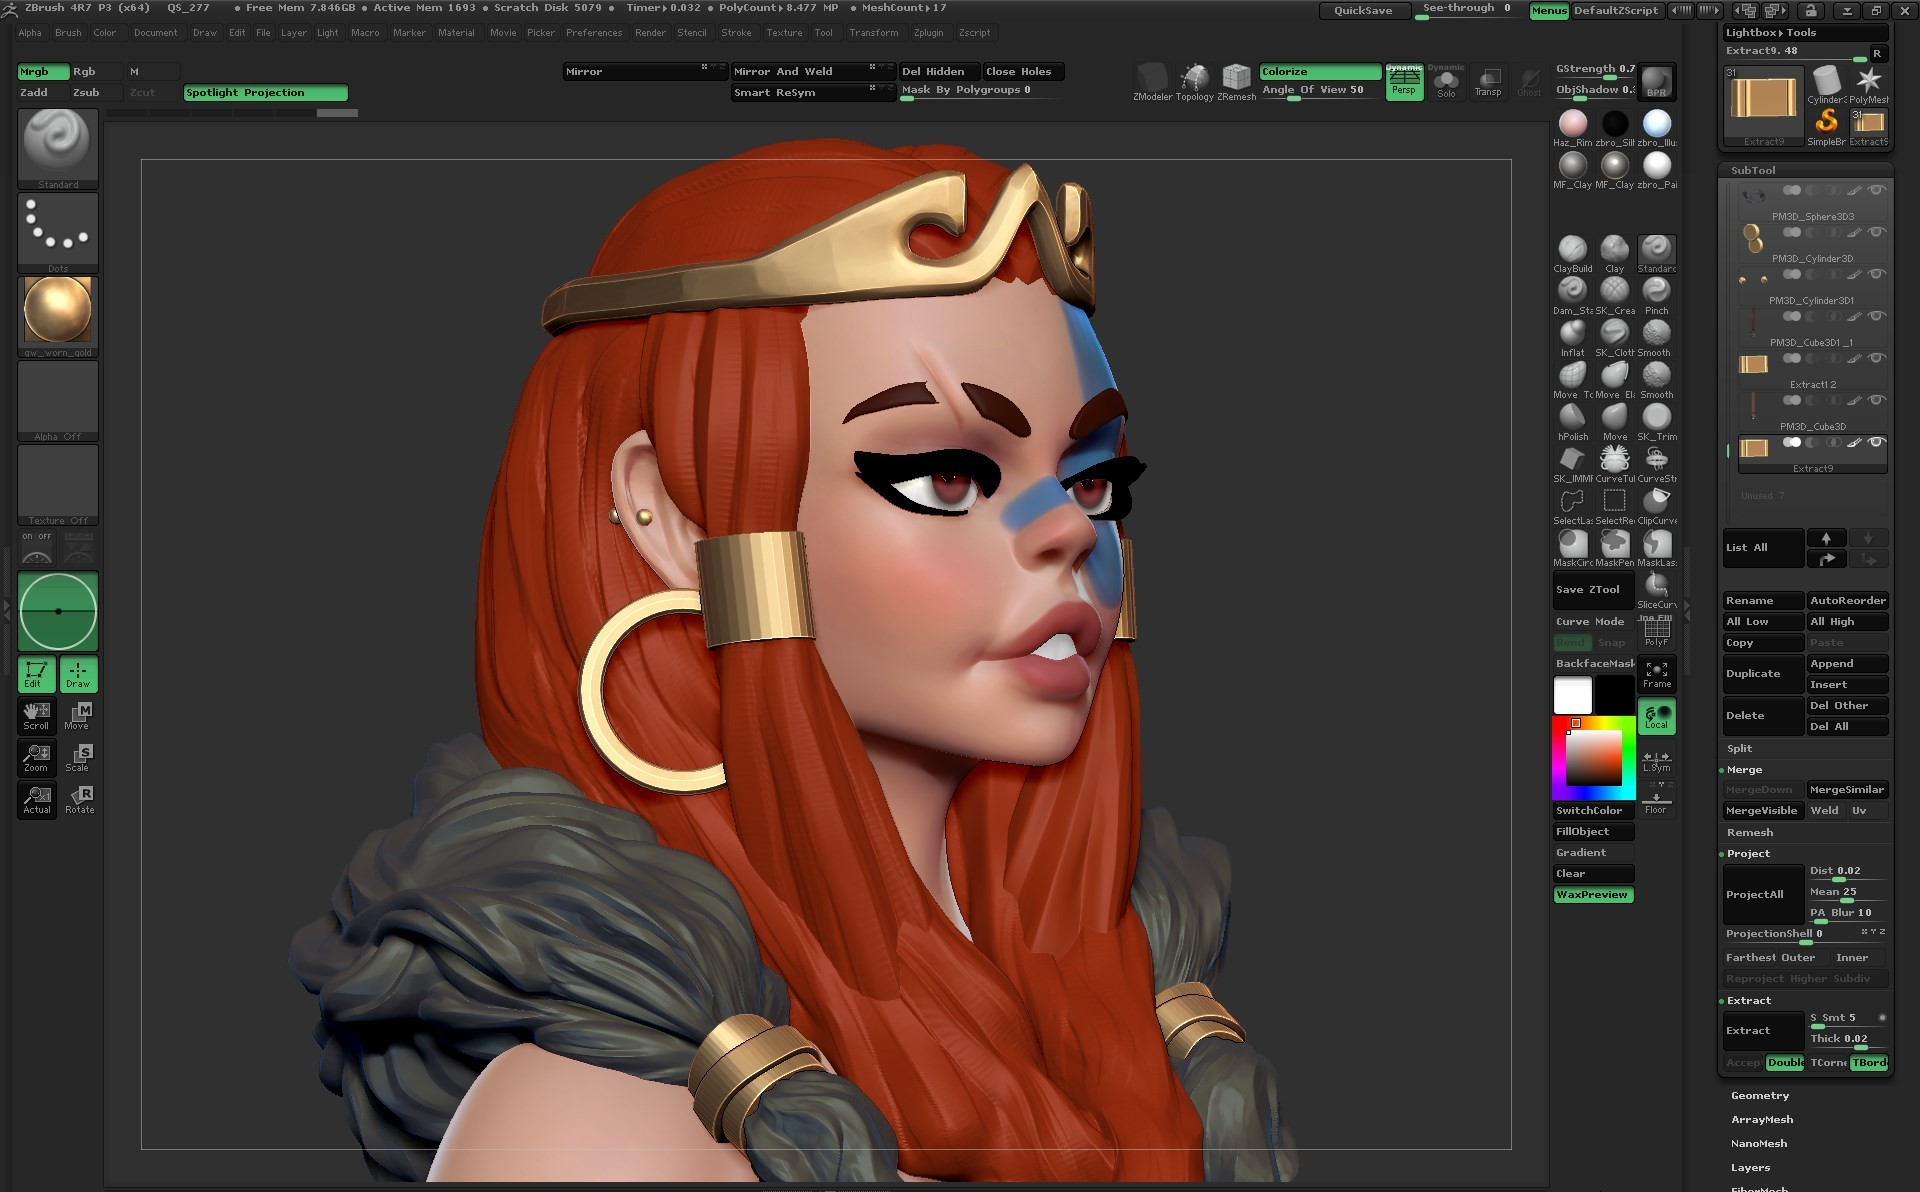 Mercurial forge zbrush64 2016 04 04 23 25 03